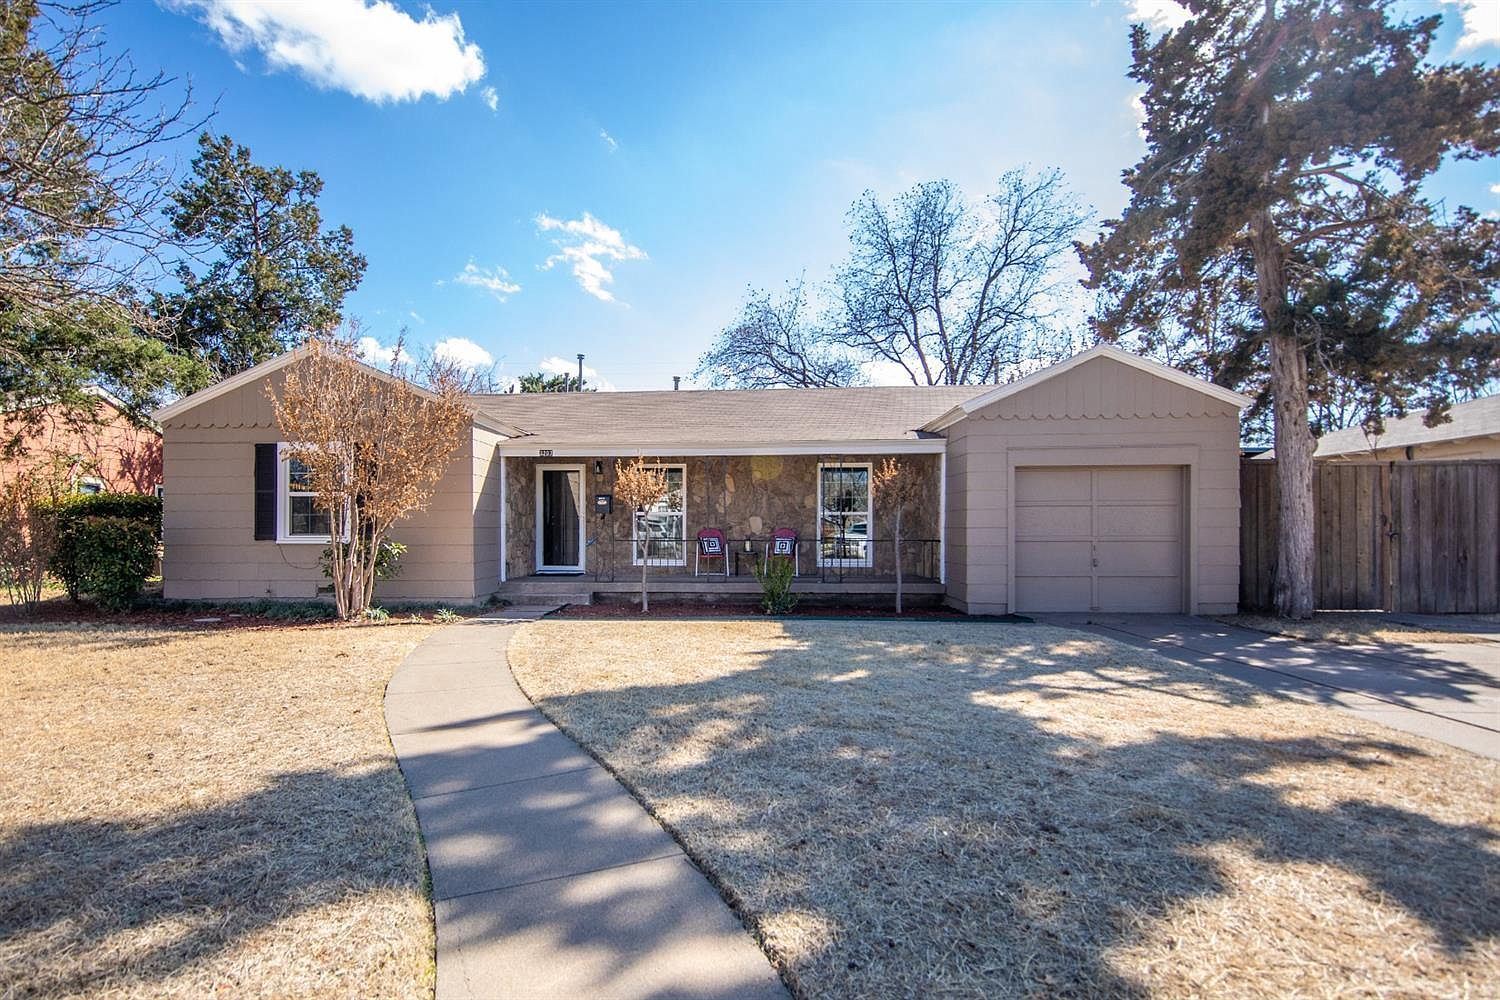 3207 31st St, Lubbock, TX 79410 in 2020 (With images